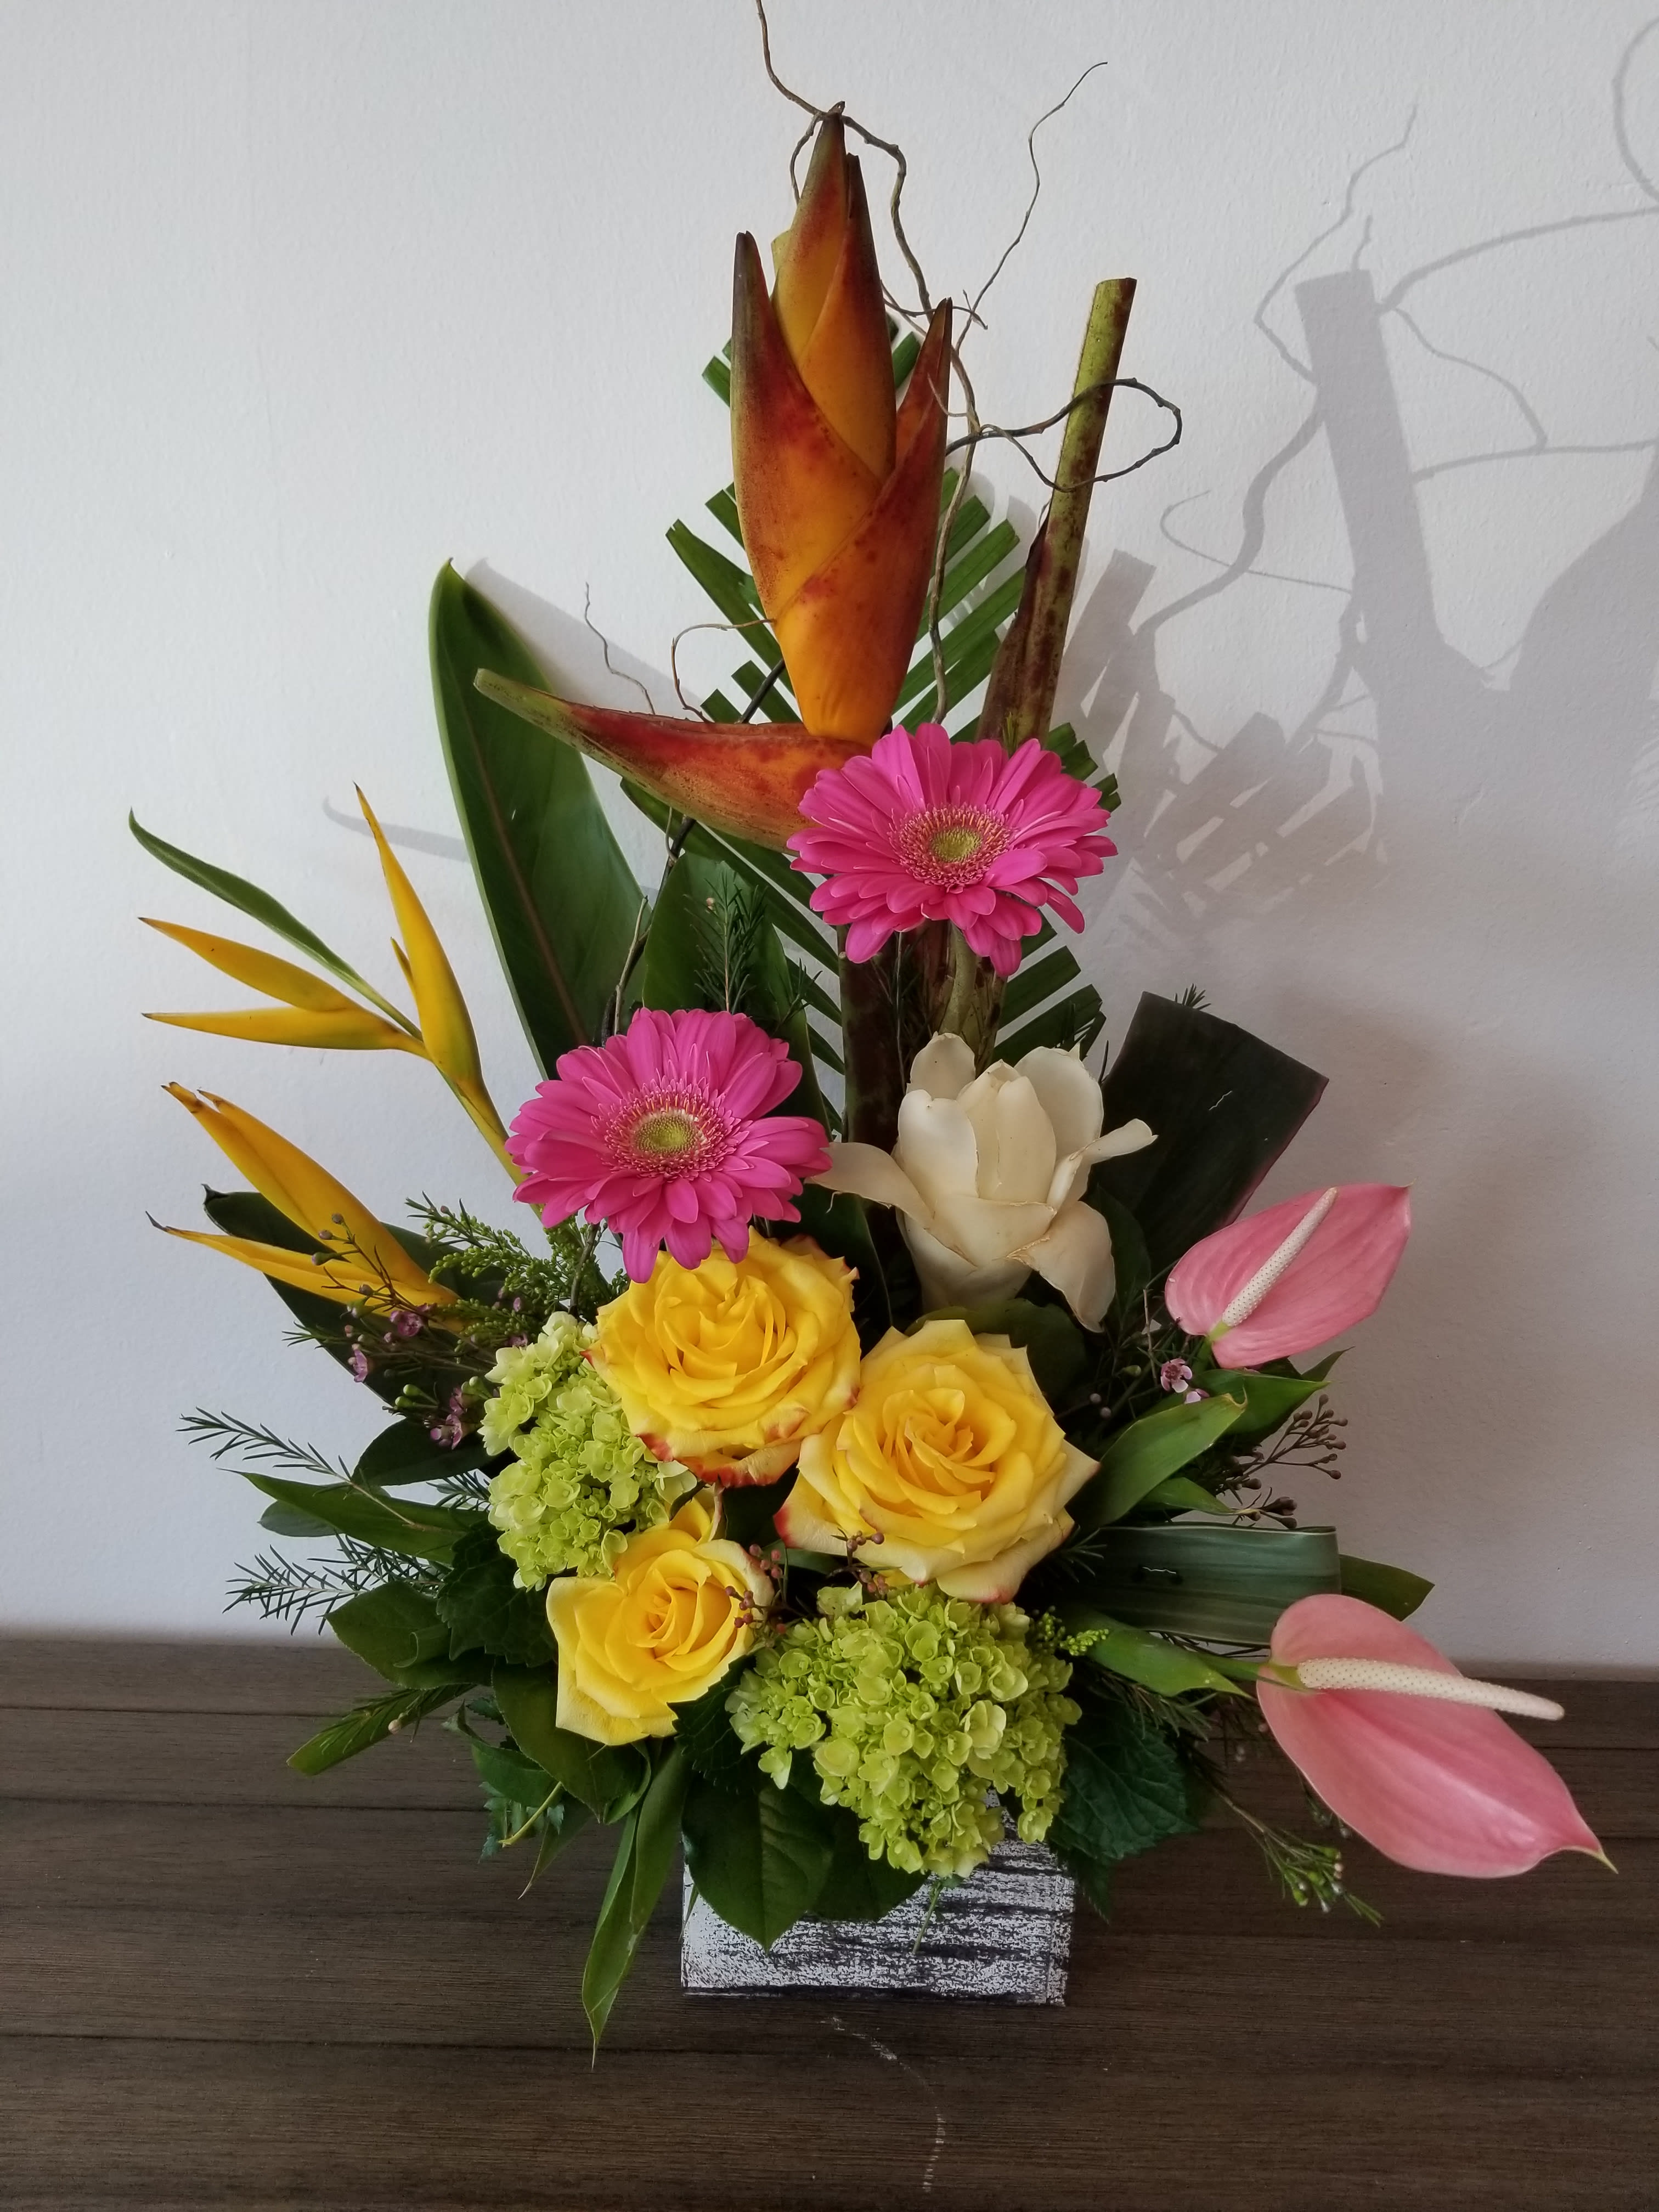 64.95 Tropical Mix - Mixed tropical flowers with traditional flowers